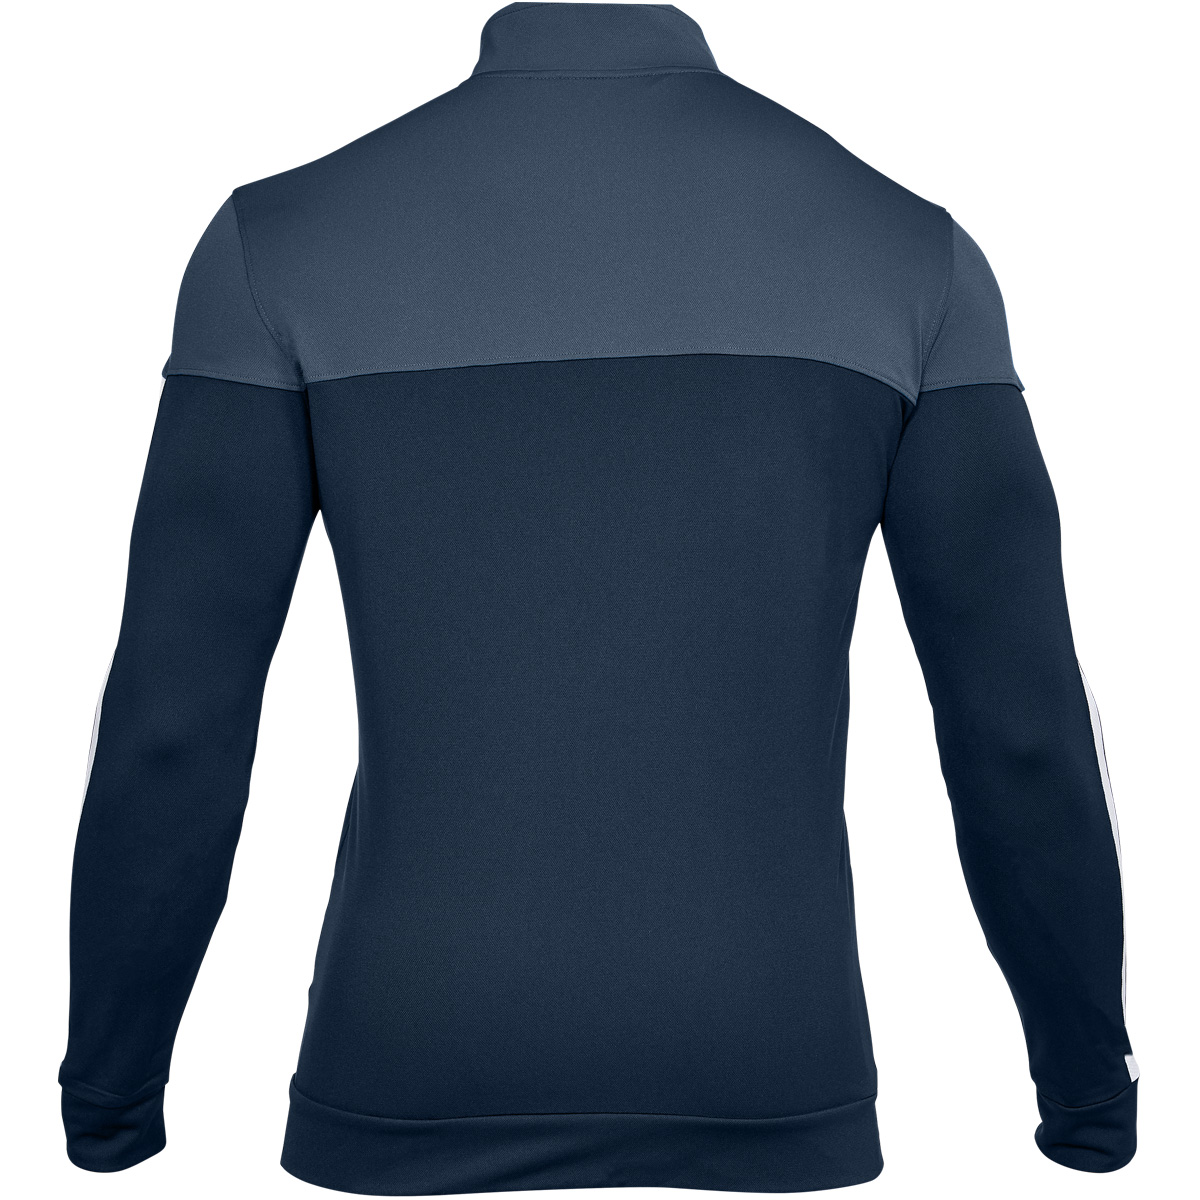 Under-Armour-Mens-2019-Sportstyle-Pique-Sports-Training-Full-Zip-Track-Jacket thumbnail 4